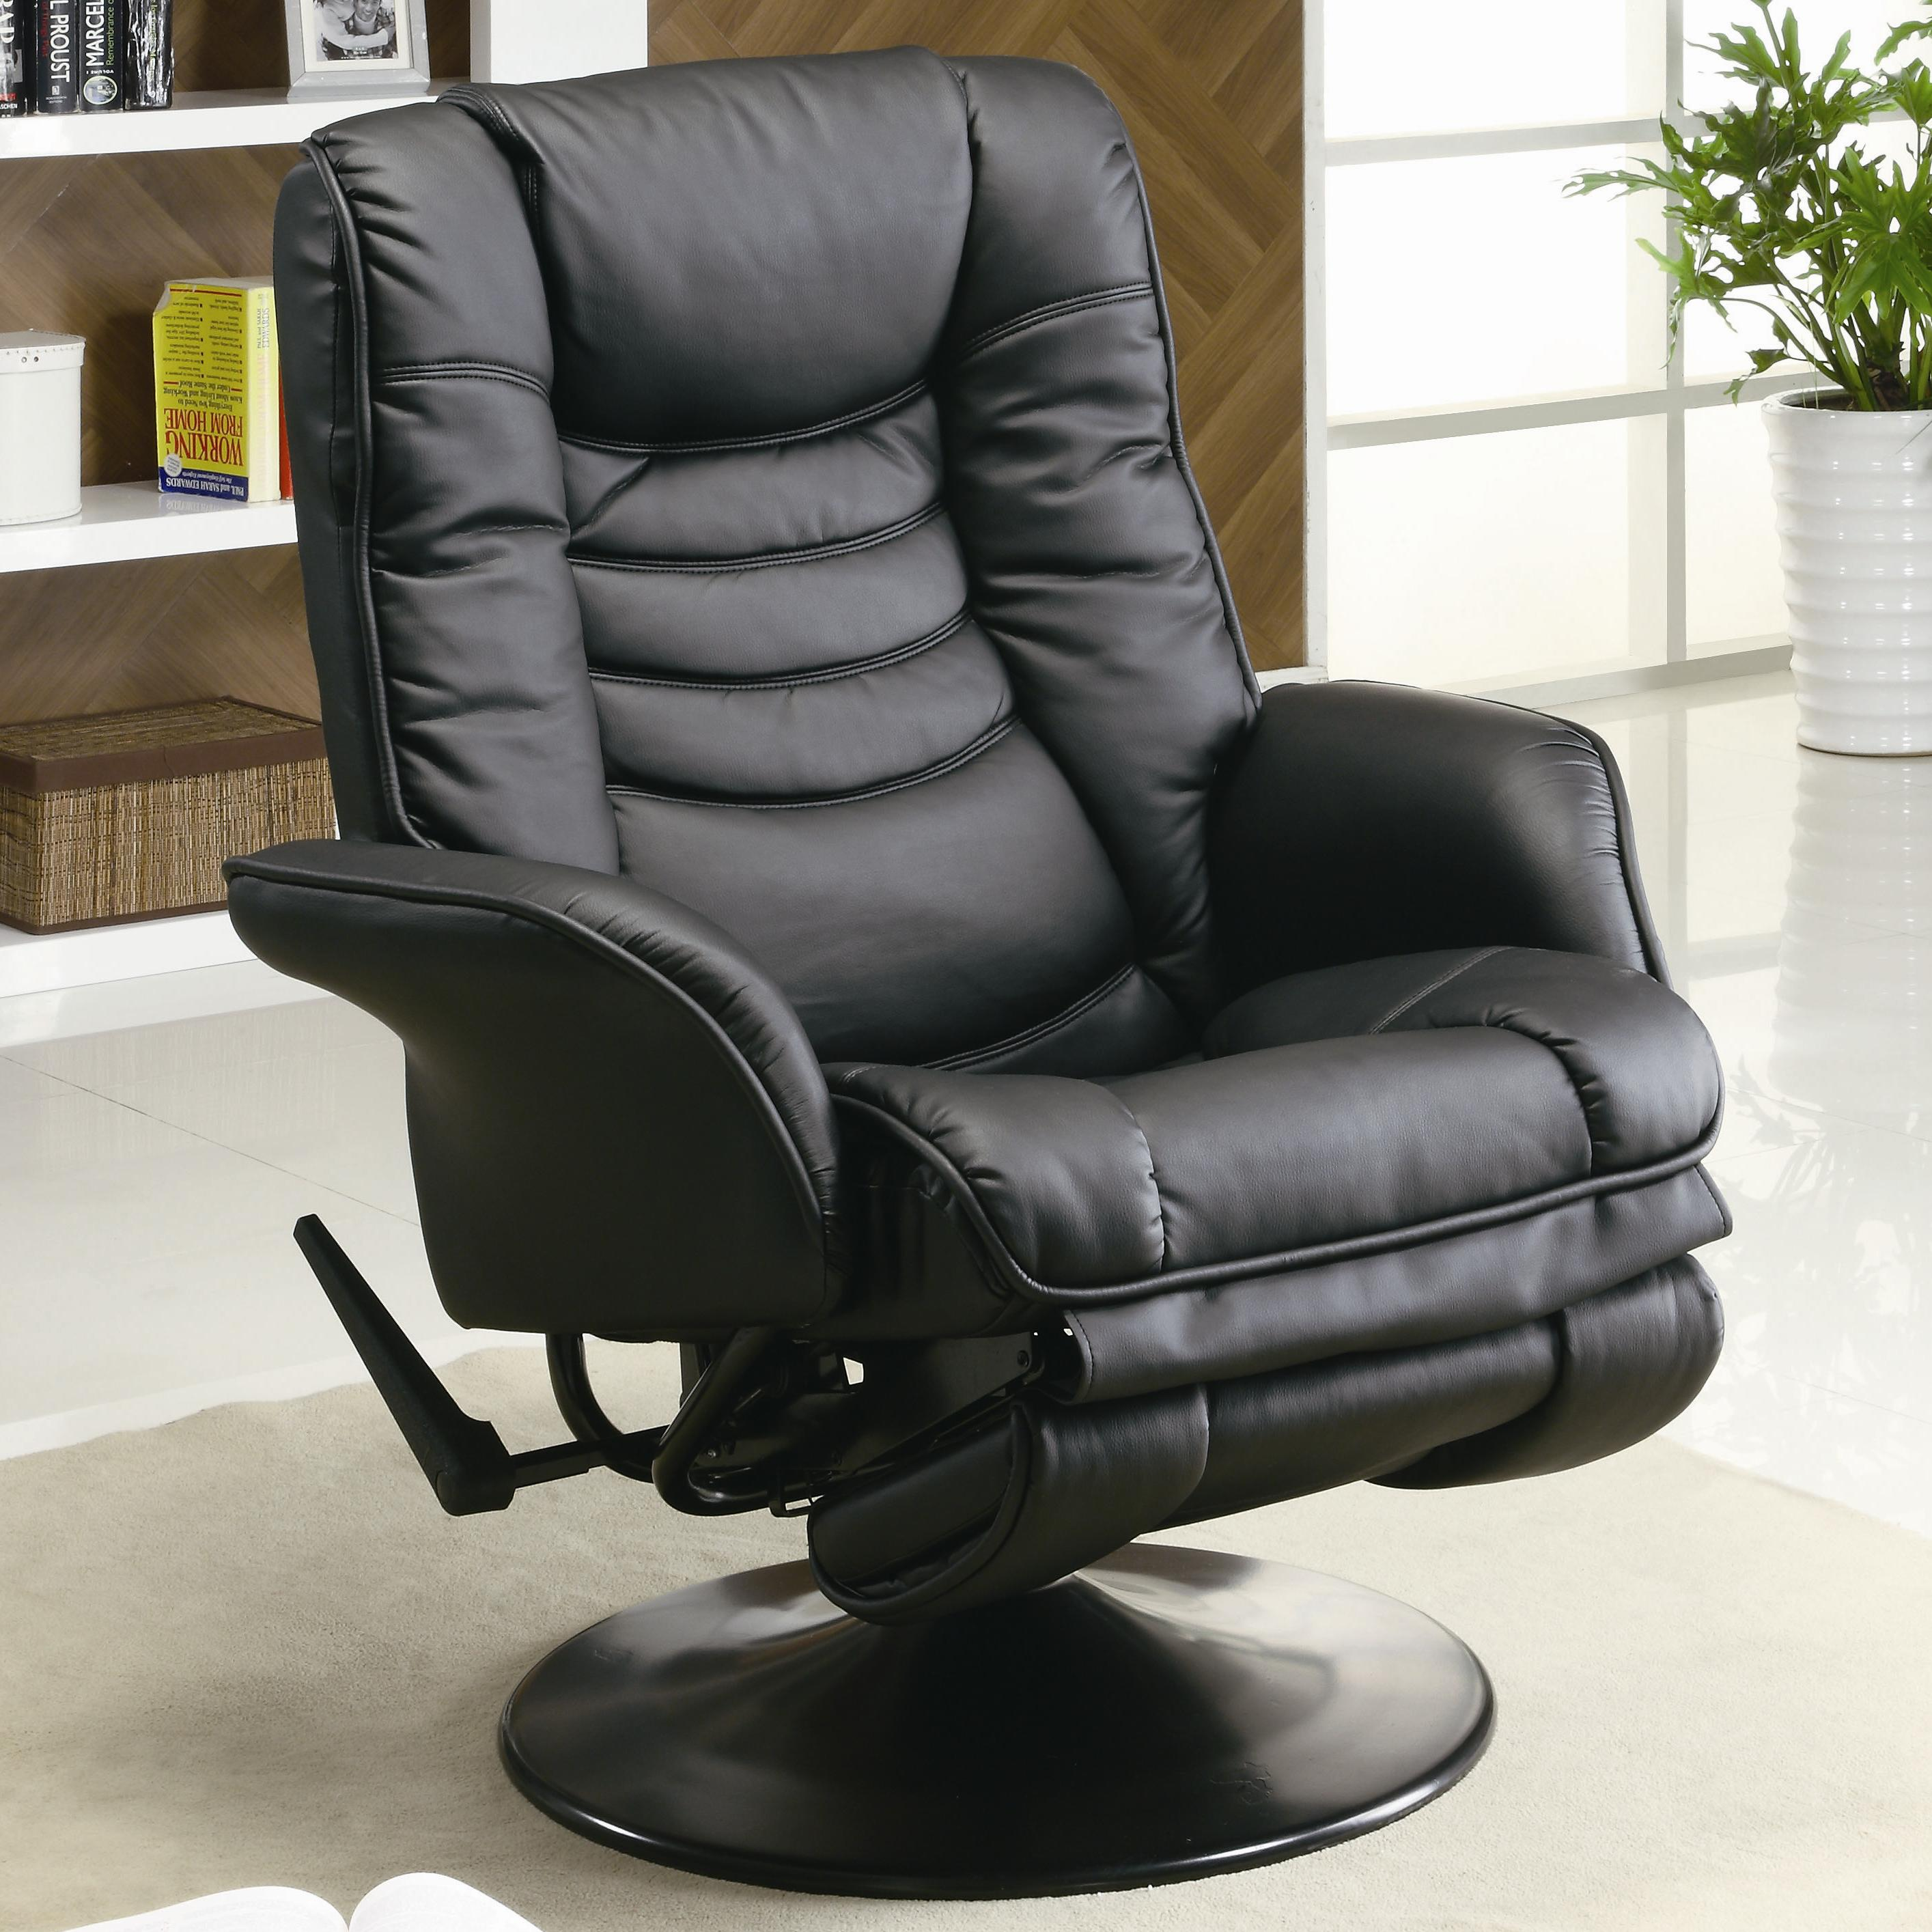 Coaster Recliners Swivel Recliner - Item Number 600229 : recliner and swivel chairs - islam-shia.org